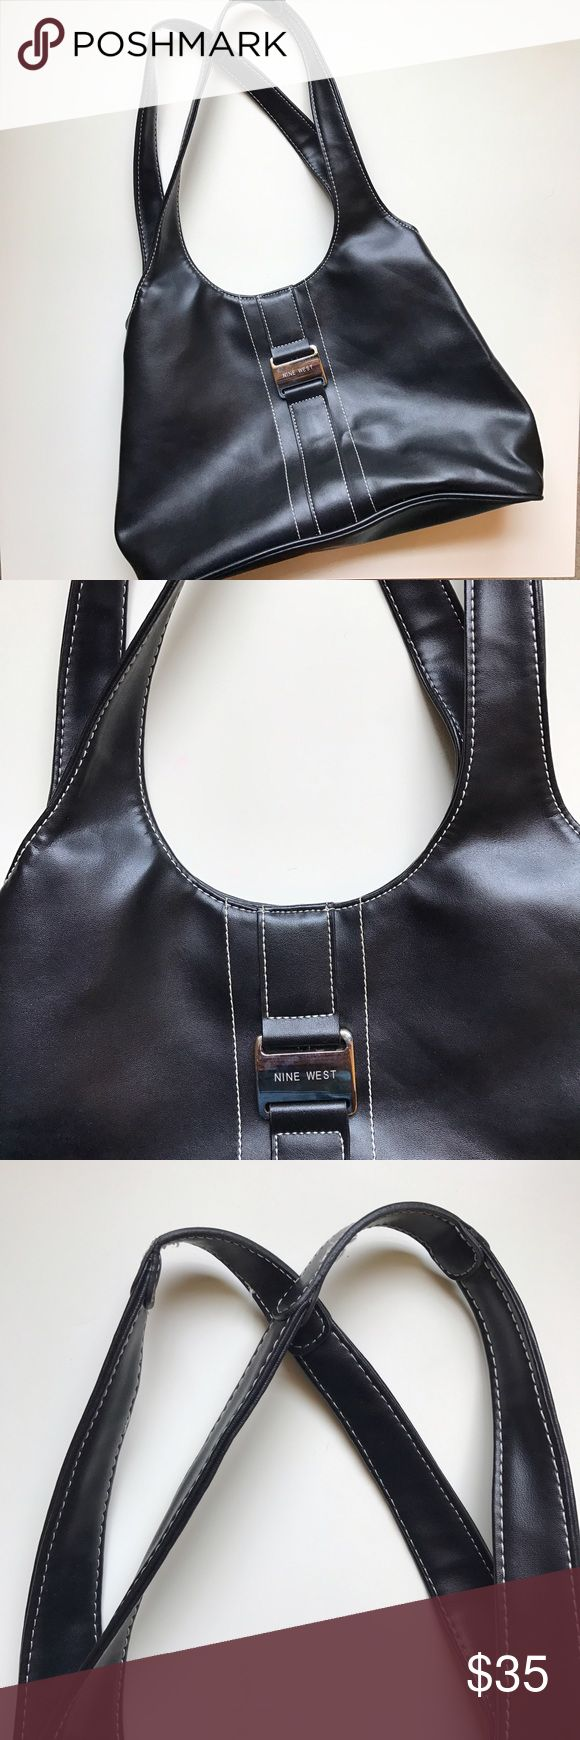 Nine West Purse •Nine West Purse •Black with White Stitching •2 Separate Compartments •Includes a Zipper Pocket and 2 Regular Pockets •Snap Closure Nine West Bags Shoulder Bags